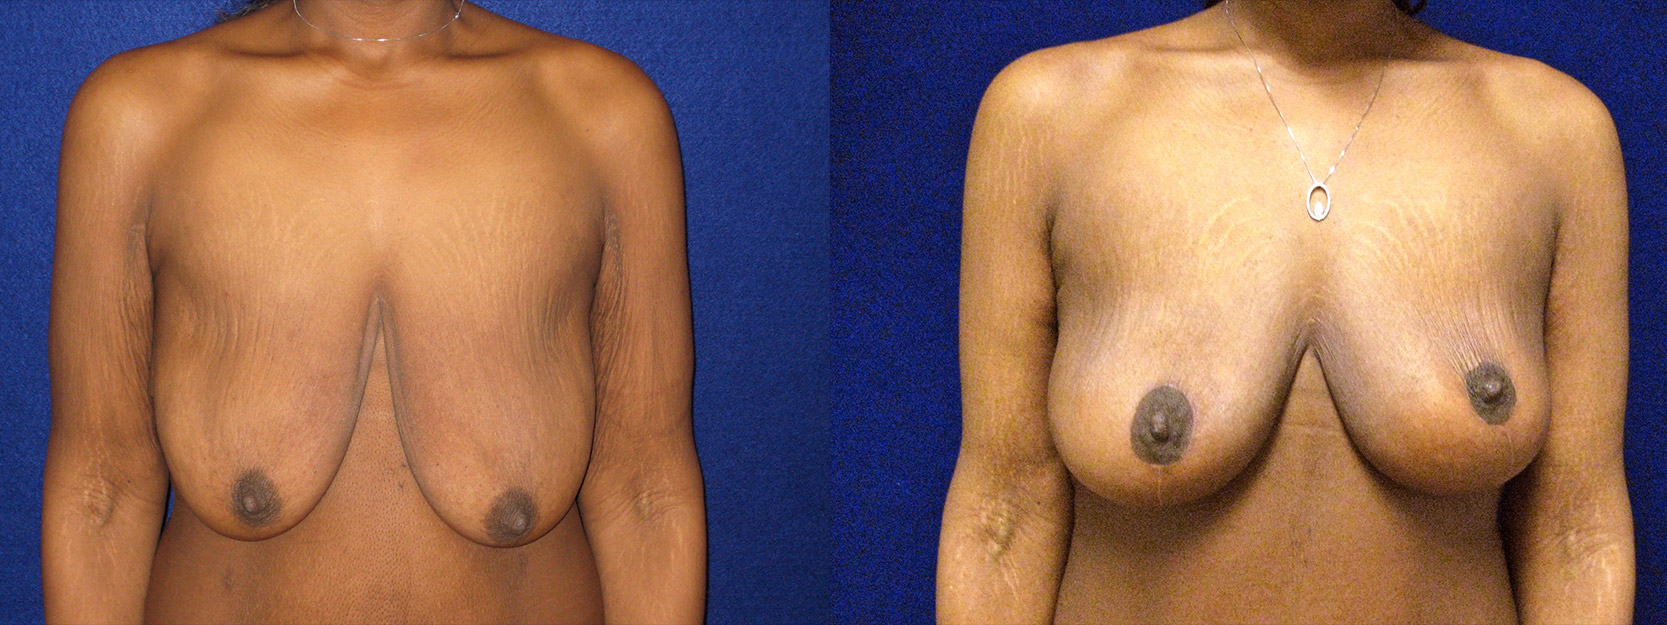 Frontal View - Breast Lift and Arm Lift After Massive Weight Loss